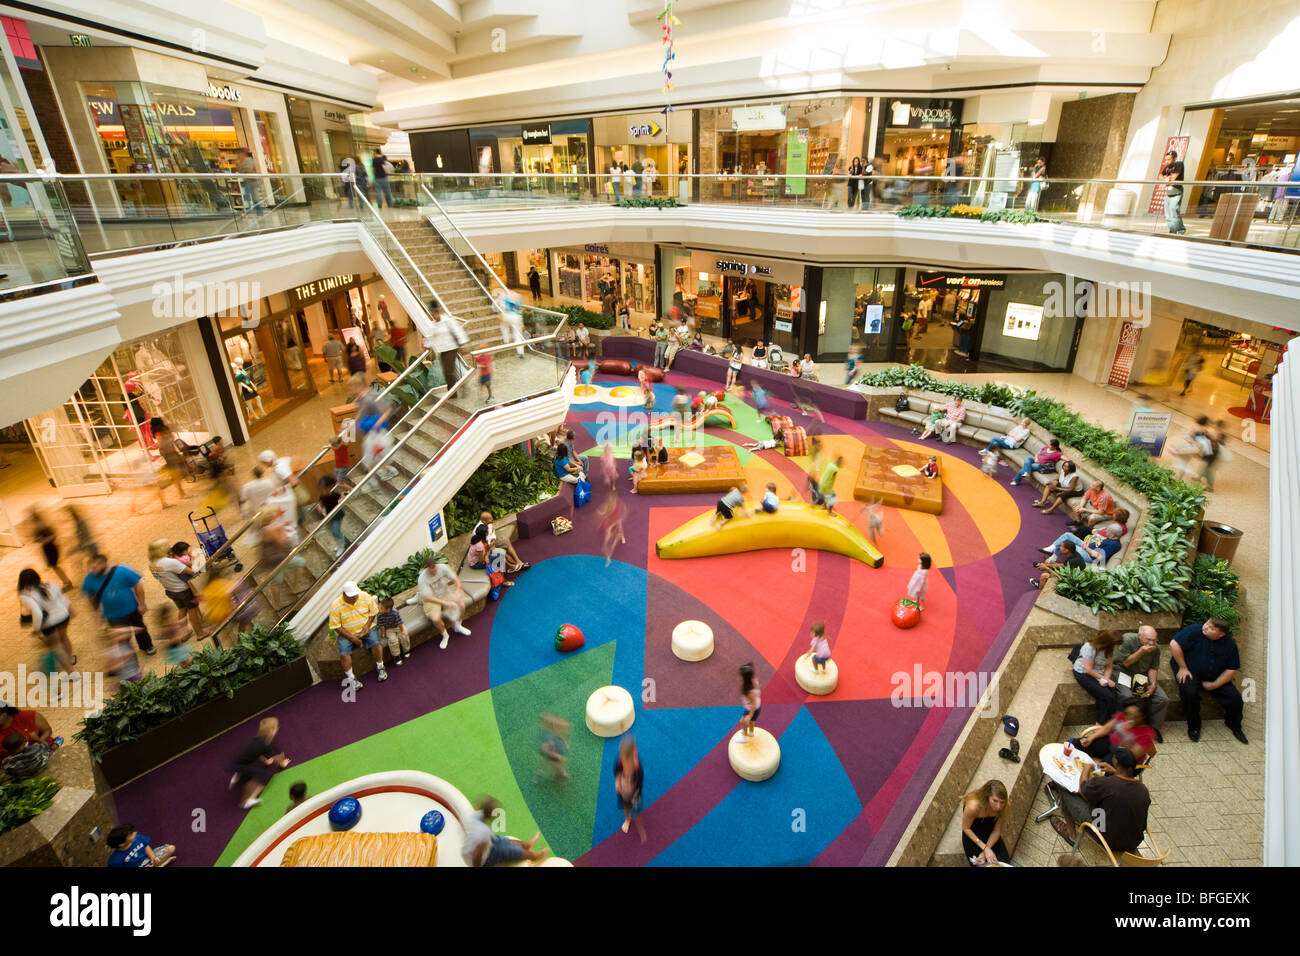 Kids Kourt, Court, corner, area, playground in the Cherry Creek Shopping Mall in Denver Colorado CO US USA - Stock Image